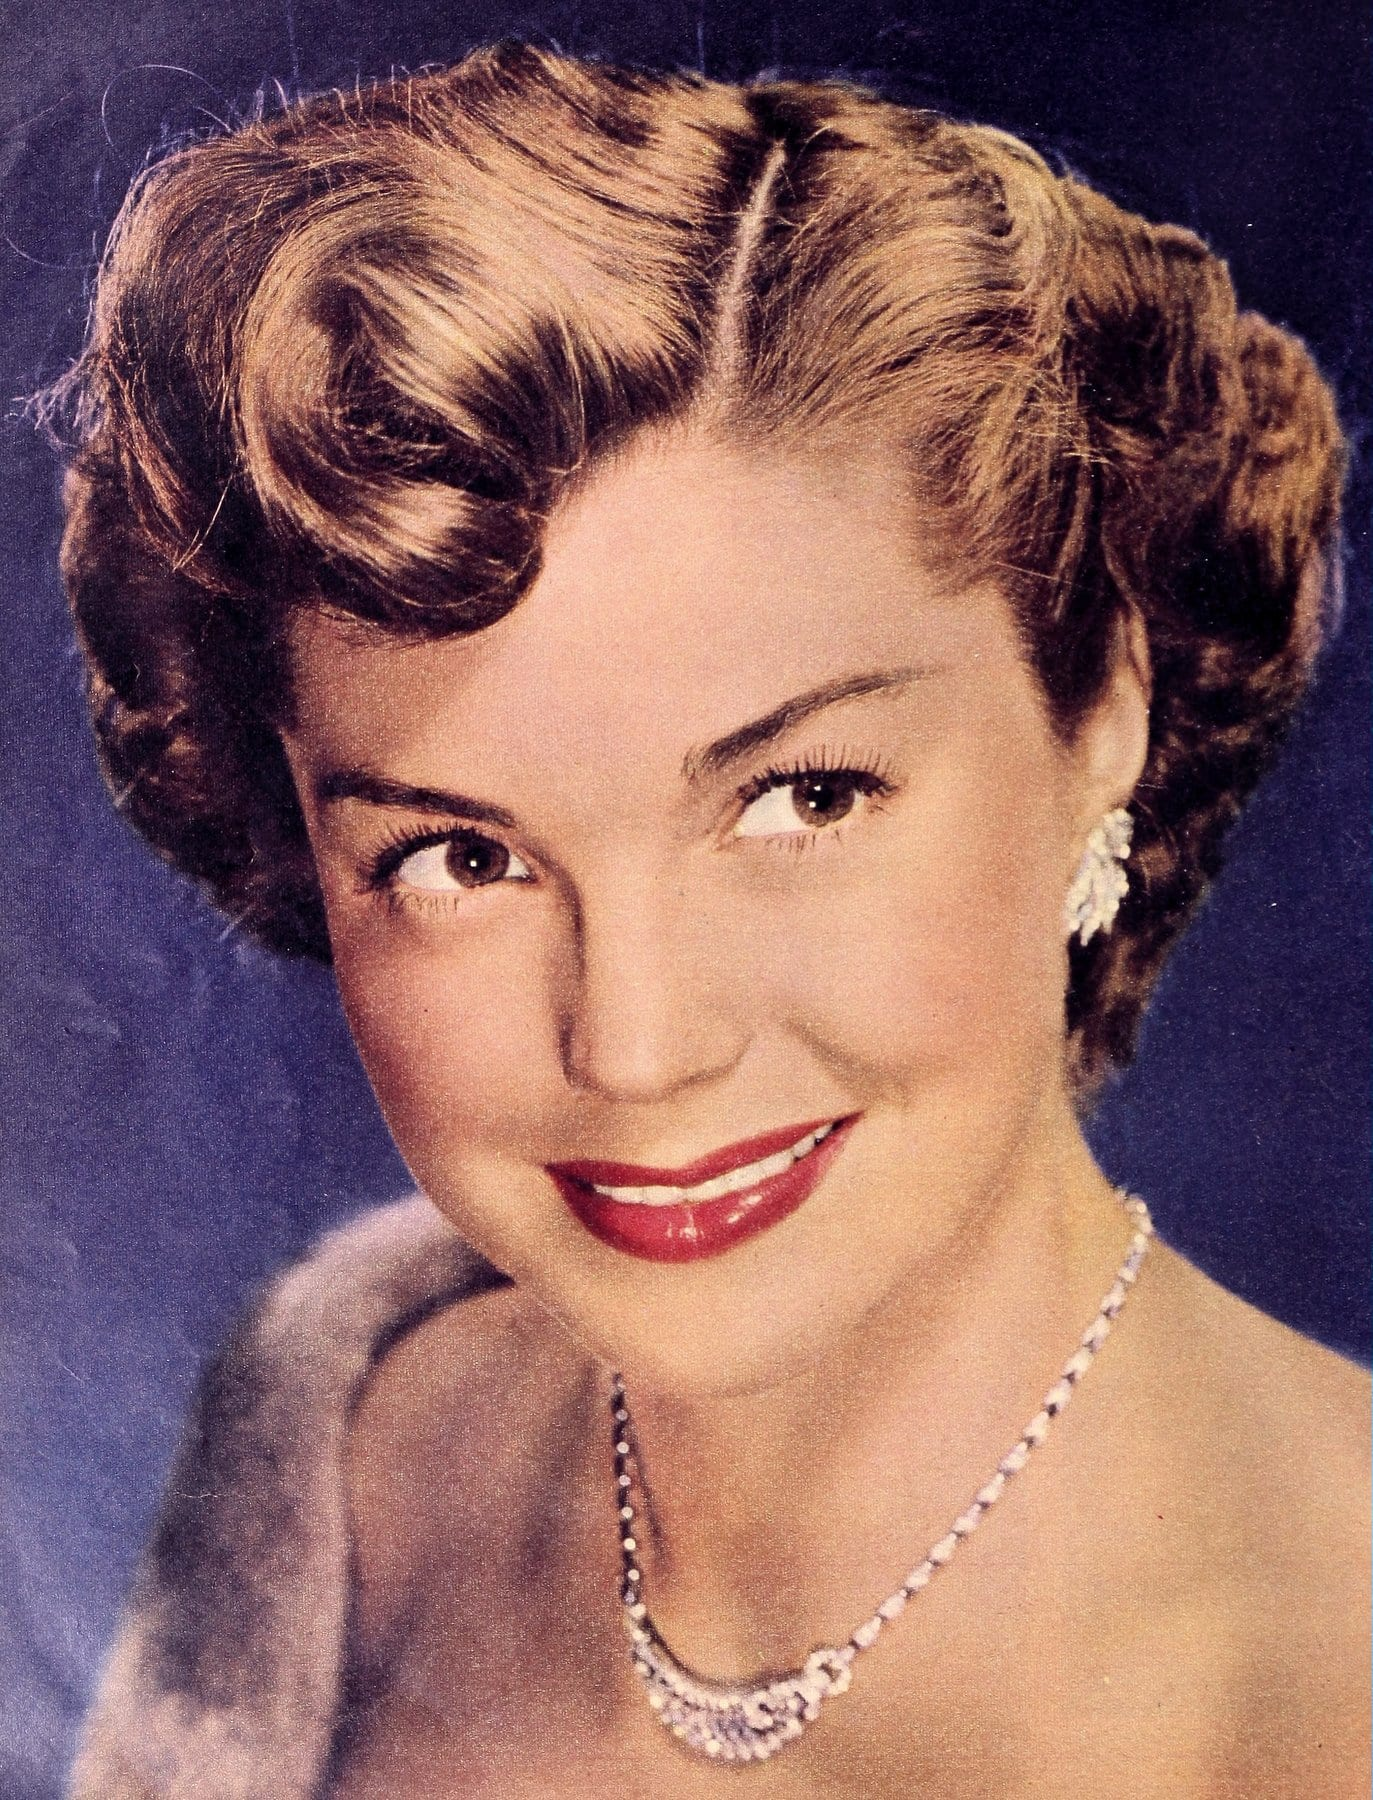 Hairstyle with waves and curls from the 1940s